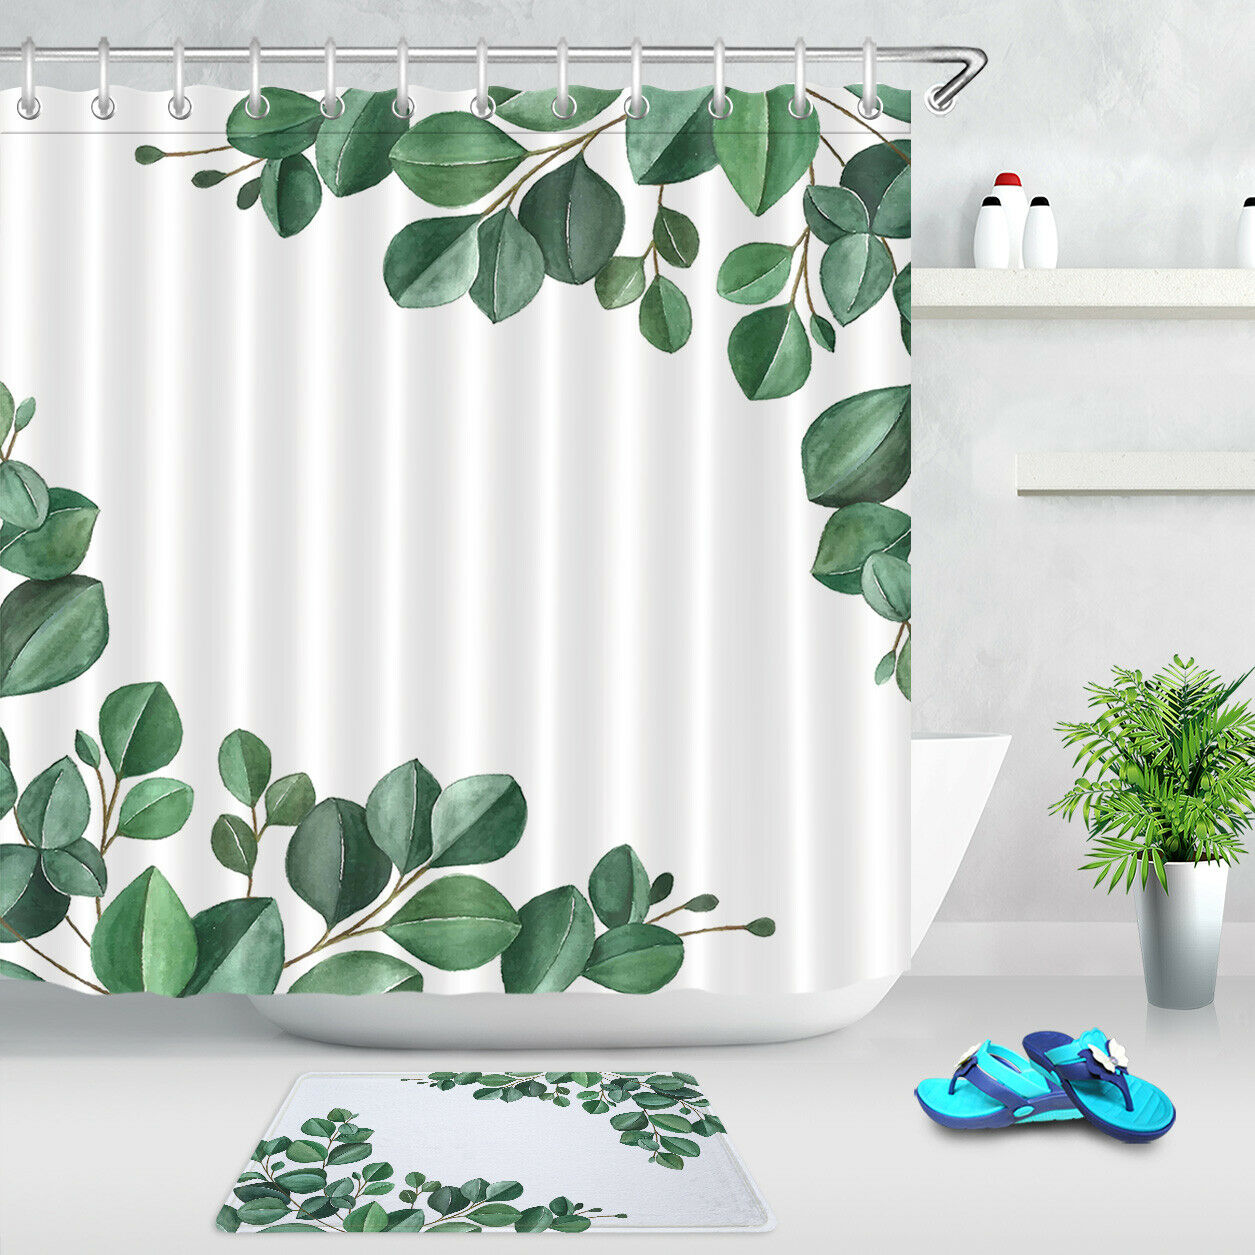 Tropical Leaves Bathroom Decor Polyester Waterproof Fabric